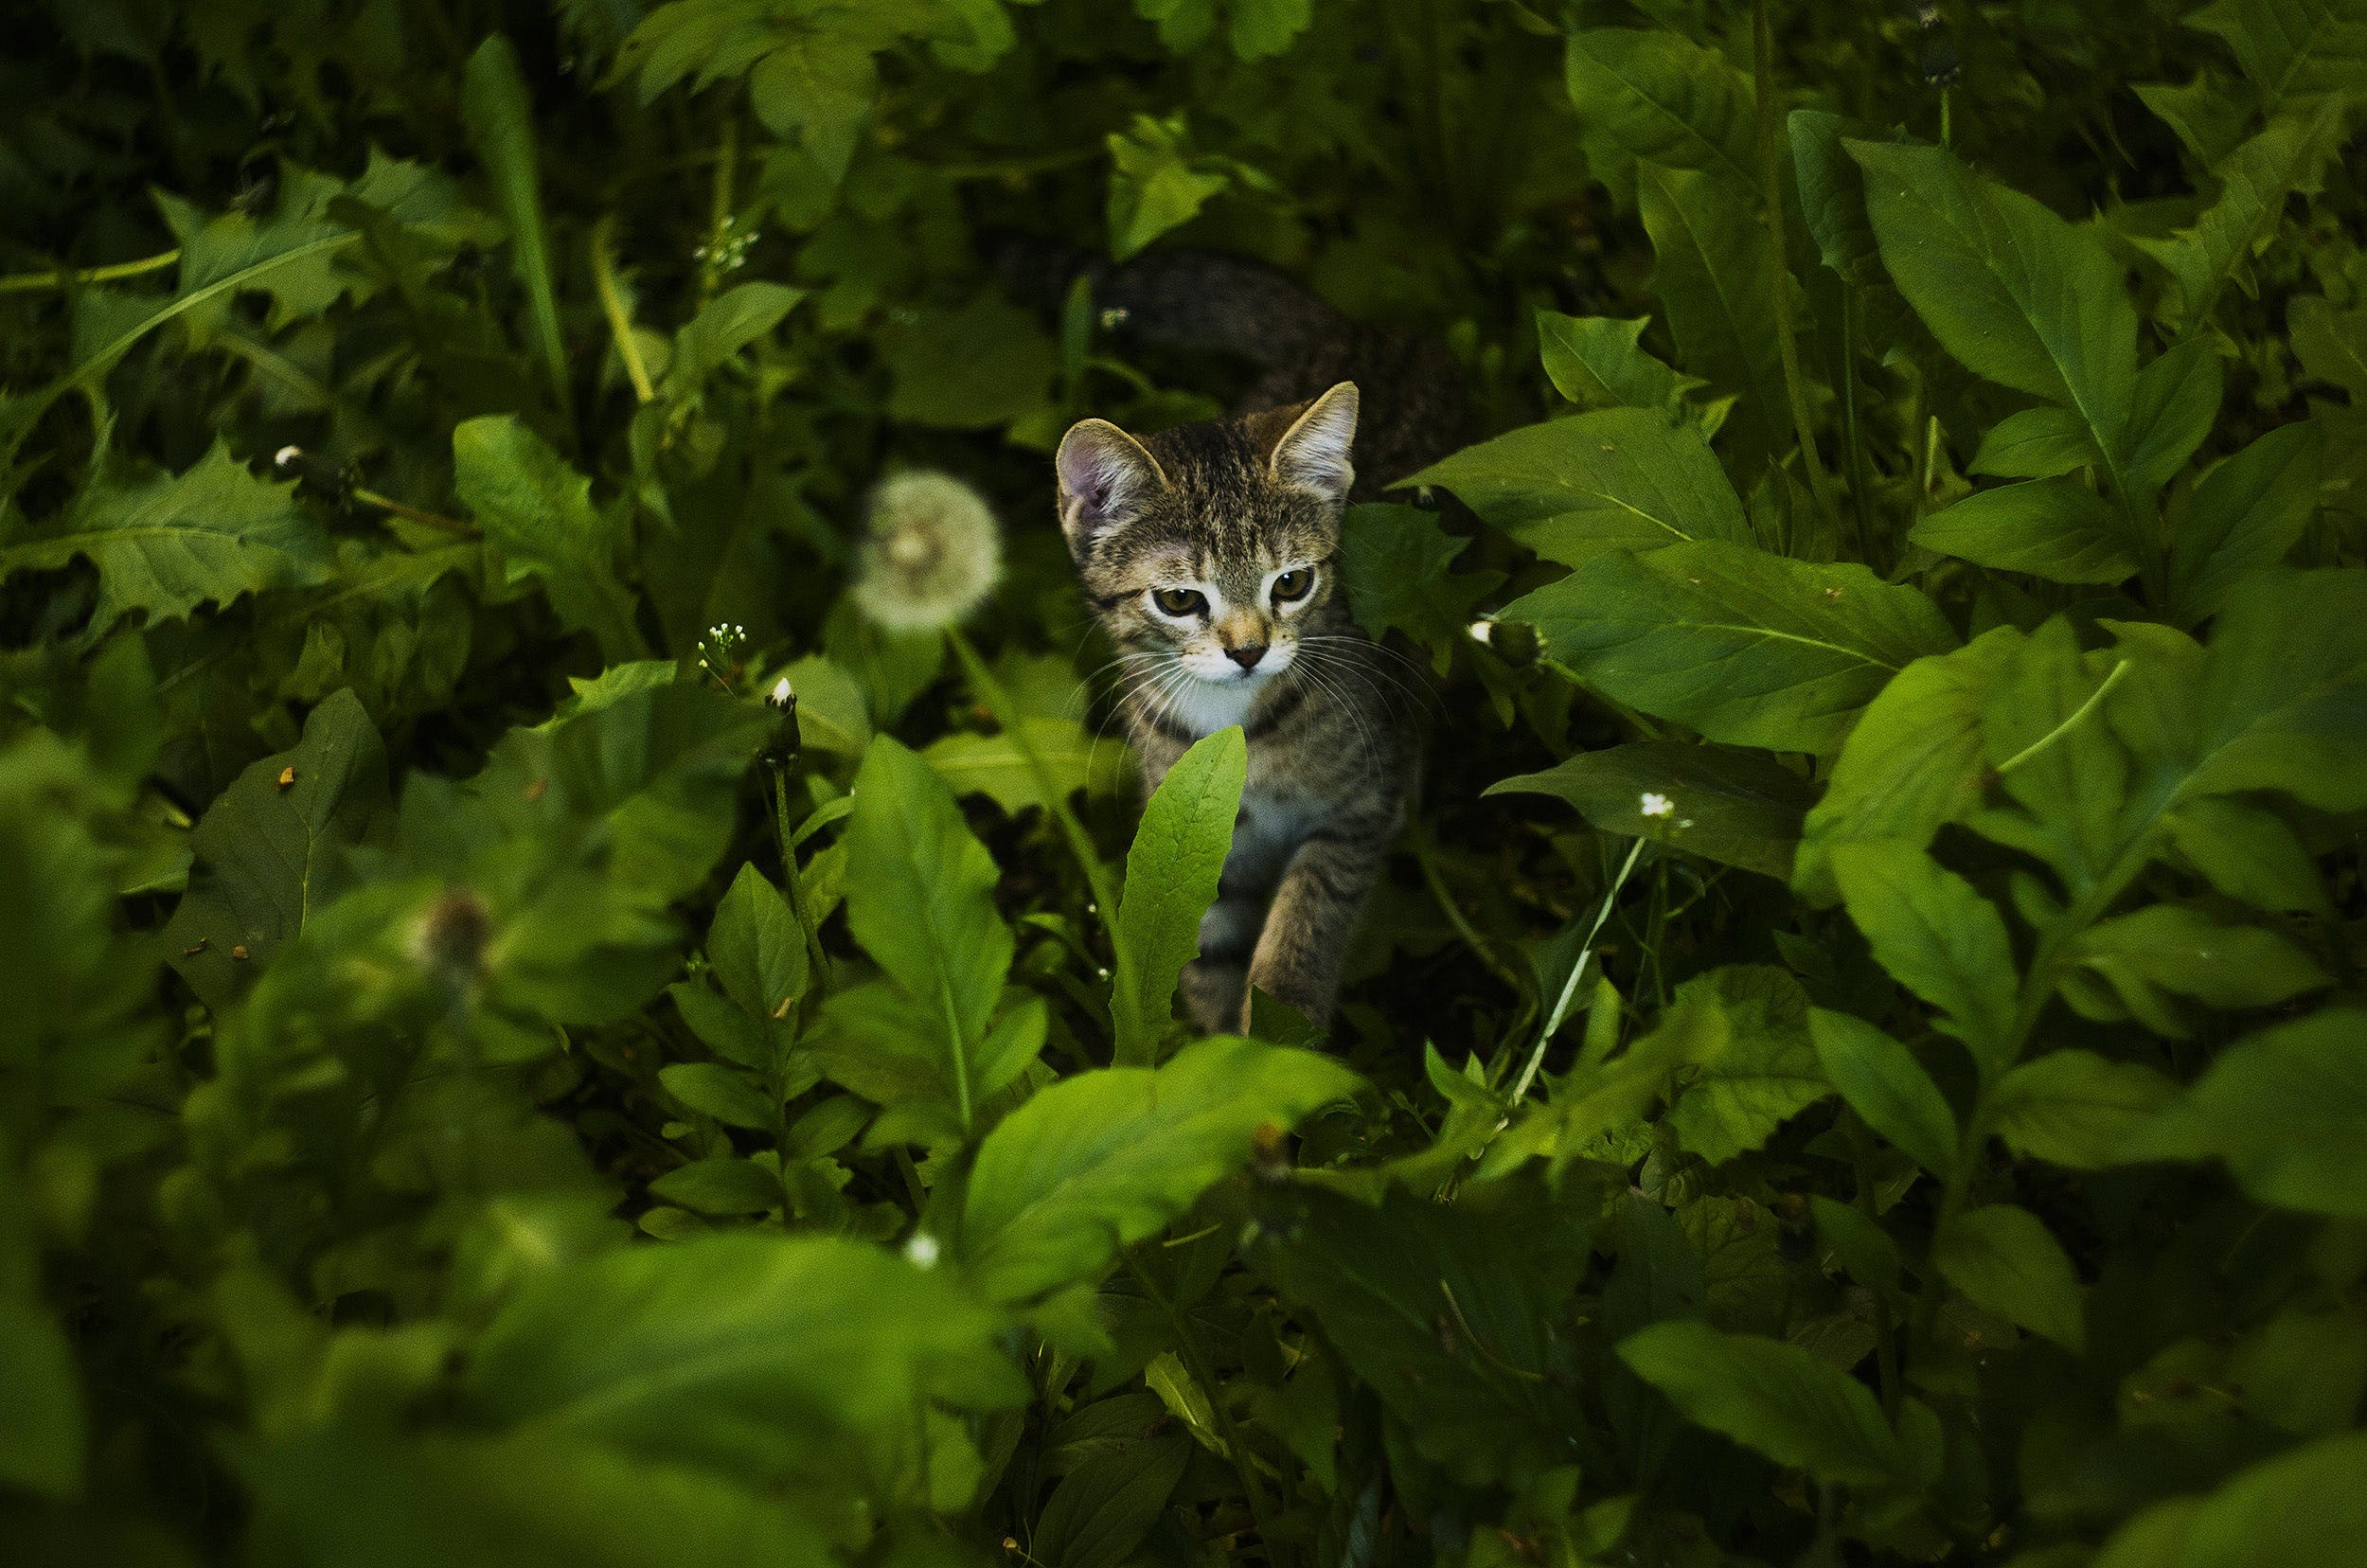 Short-fur Black and Brown Kitten Surrounded by Green Leafed Plants